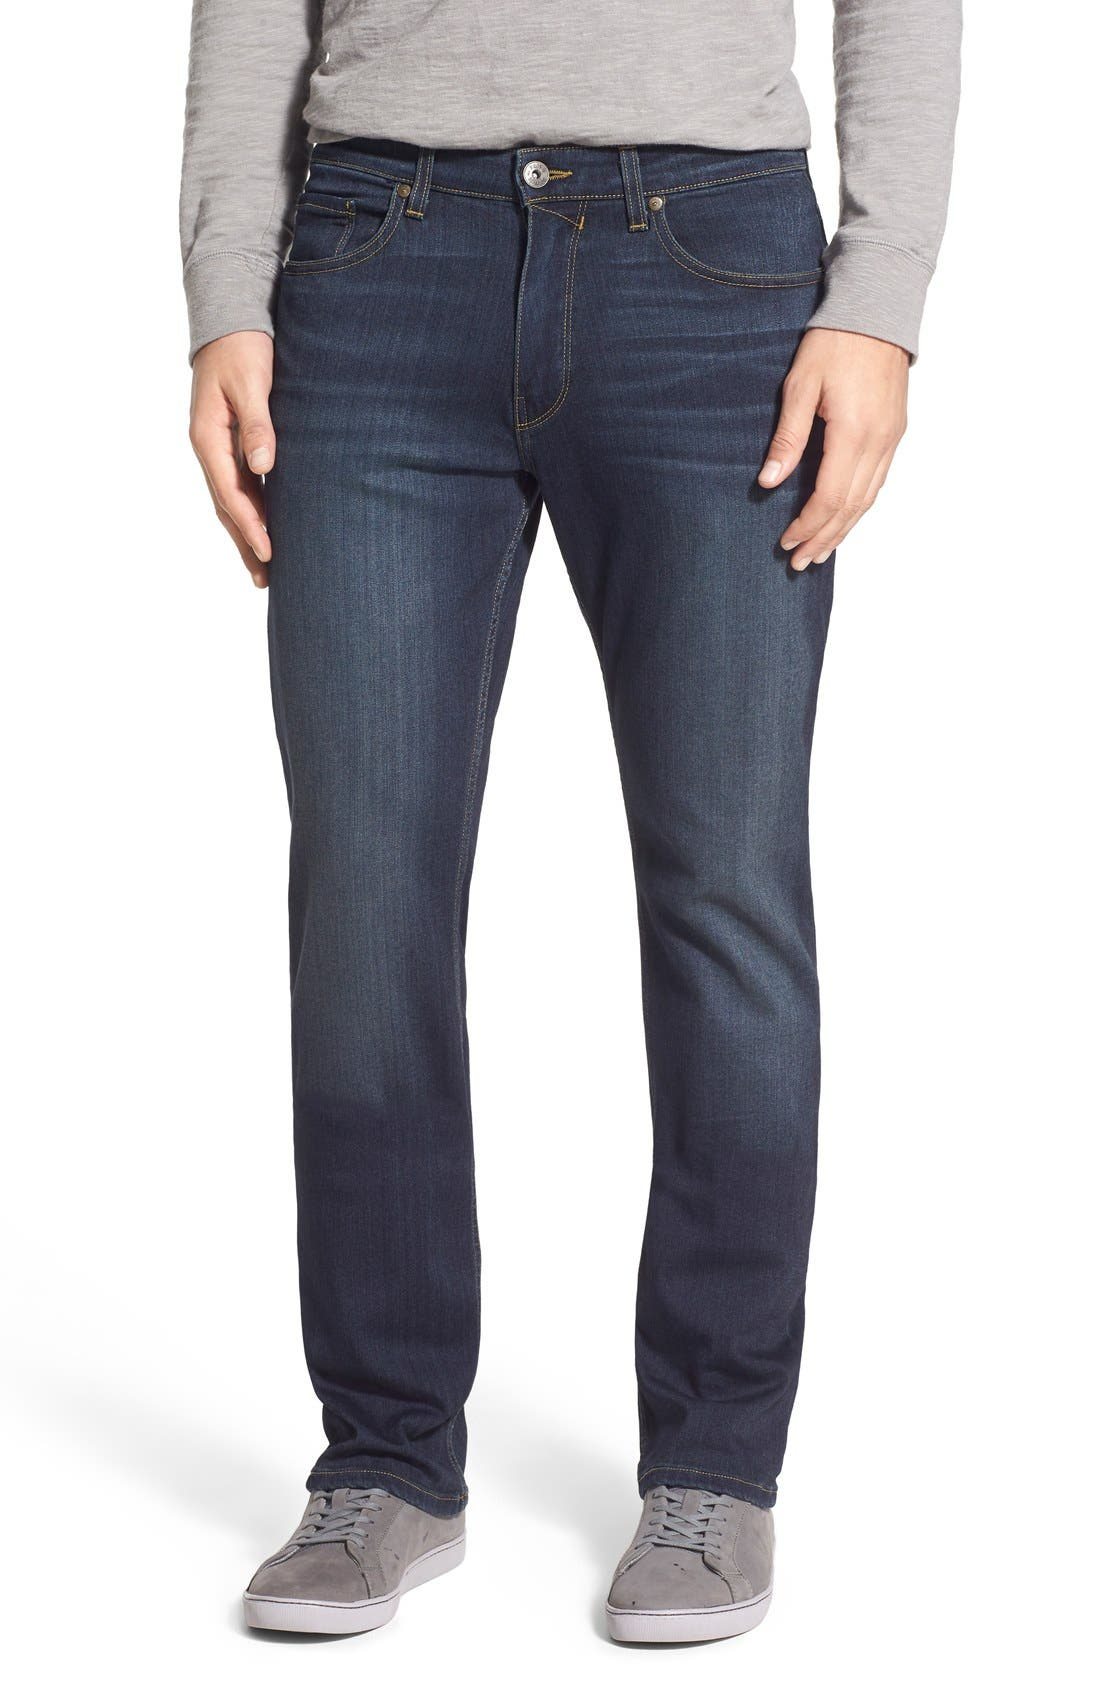 'Normandie' Straight Leg Jeans, Main, color, RIGBY